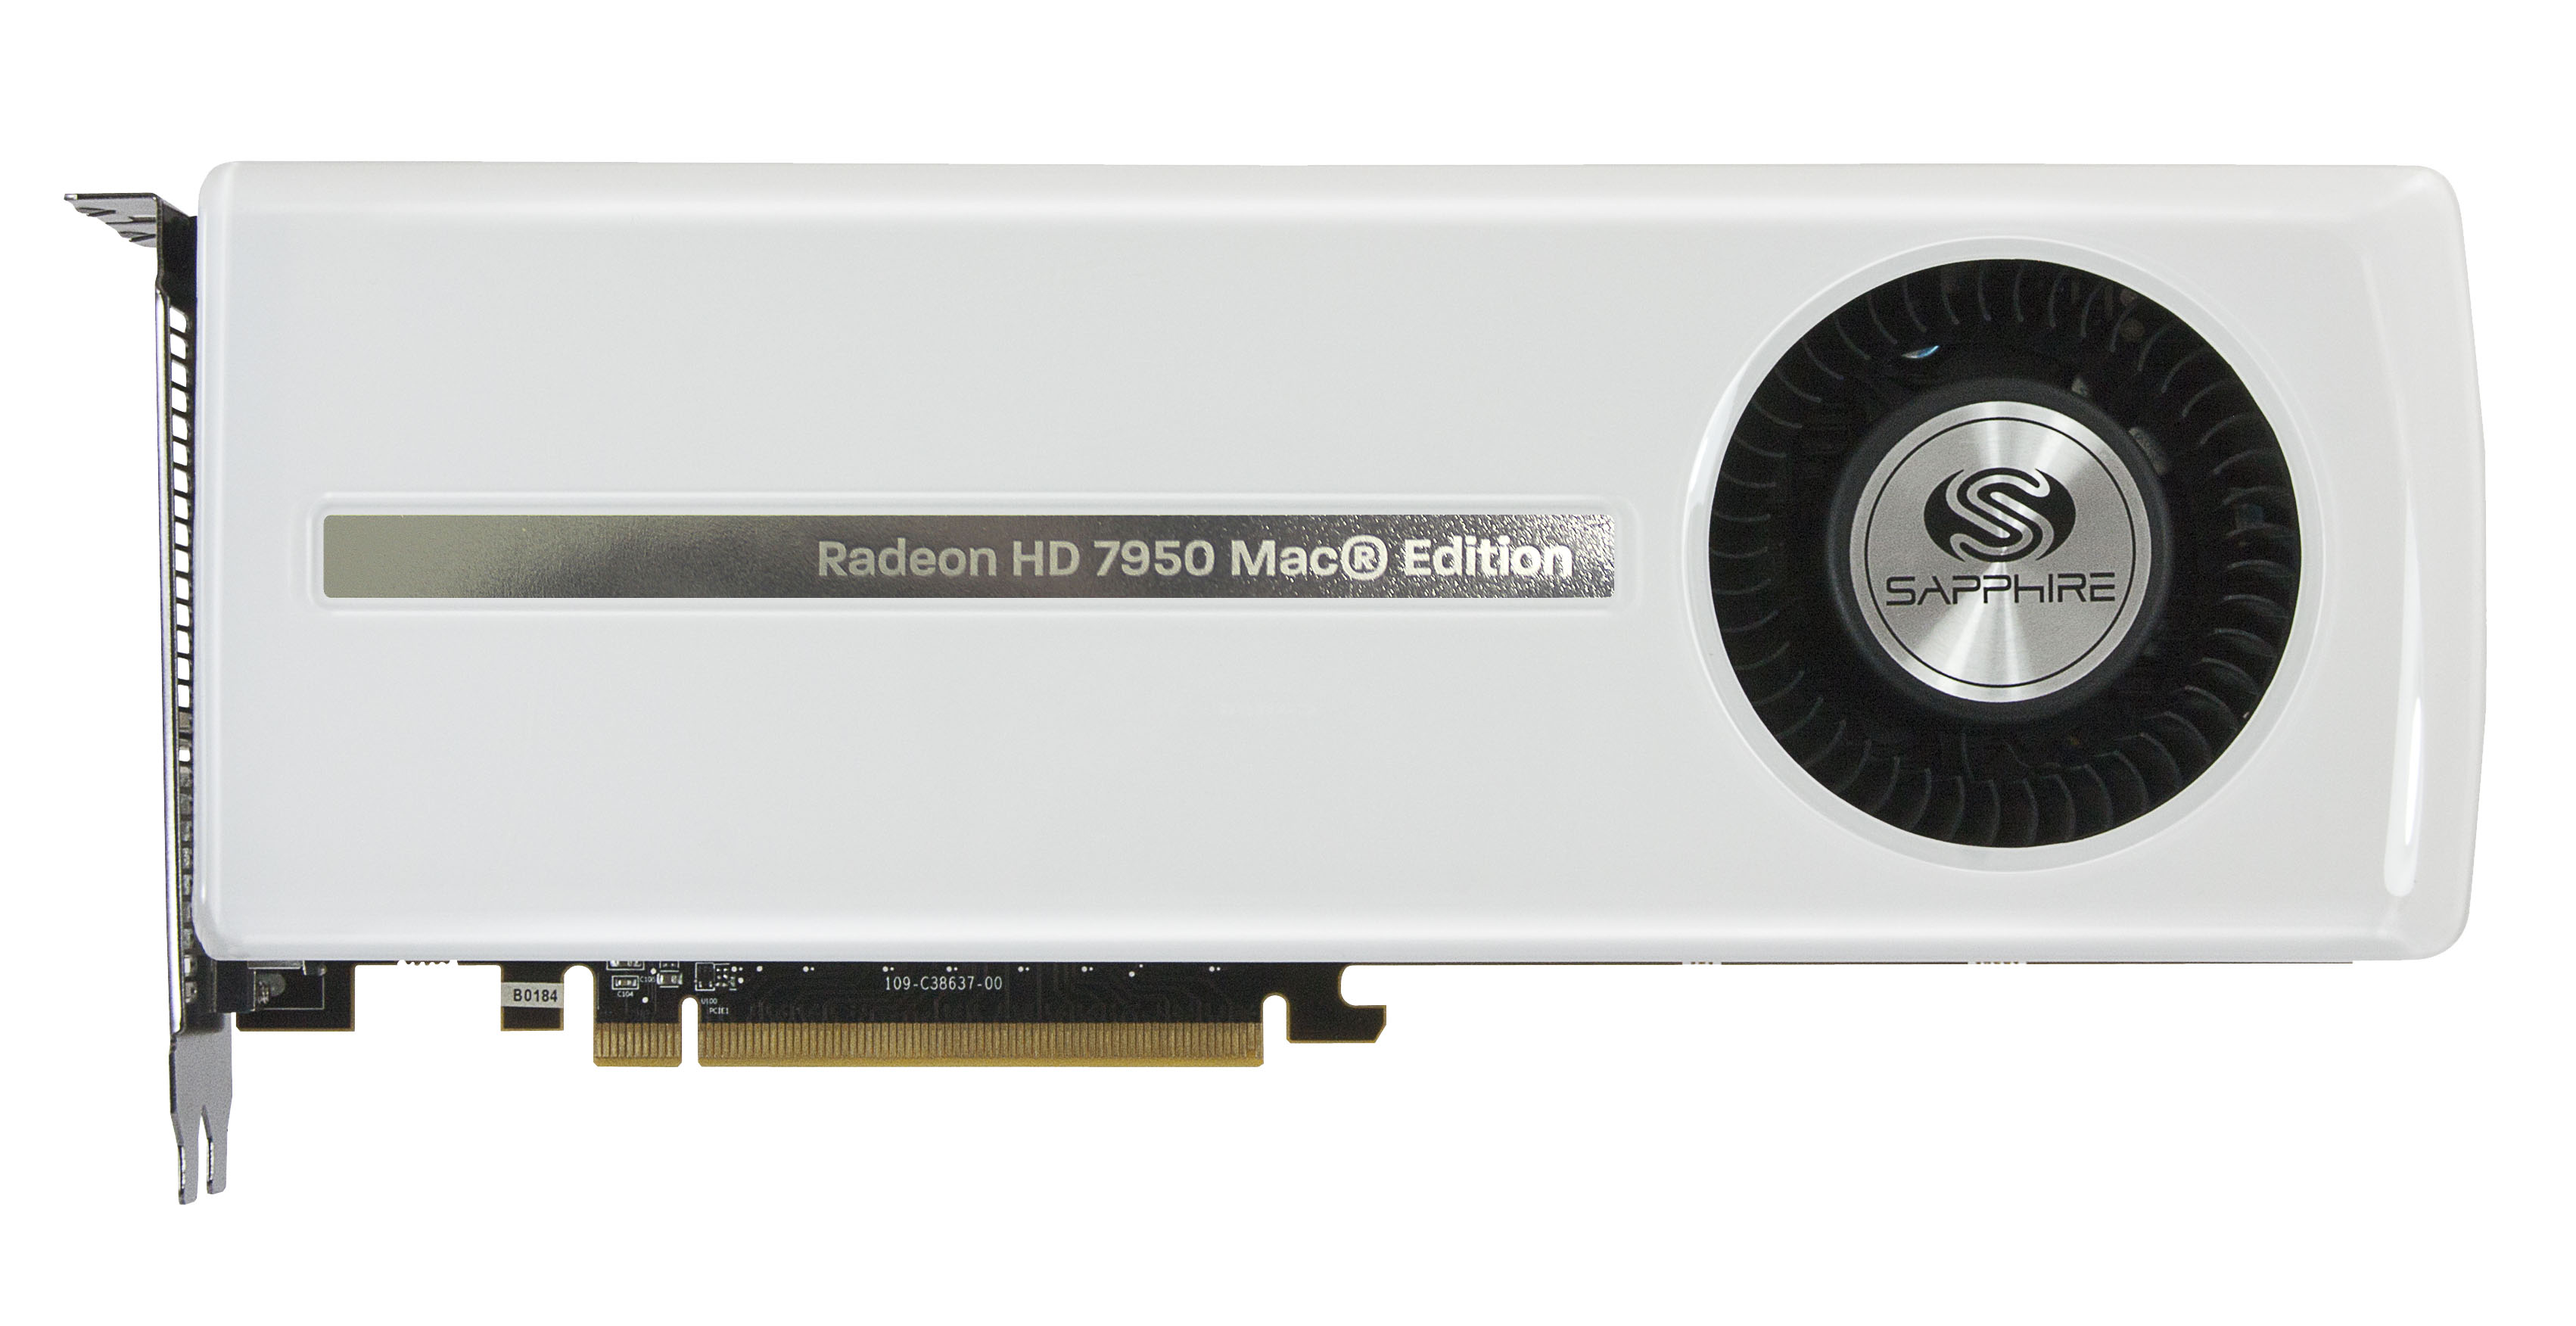 Product review: amd sapphire hd 7950 mac edition | architosh.